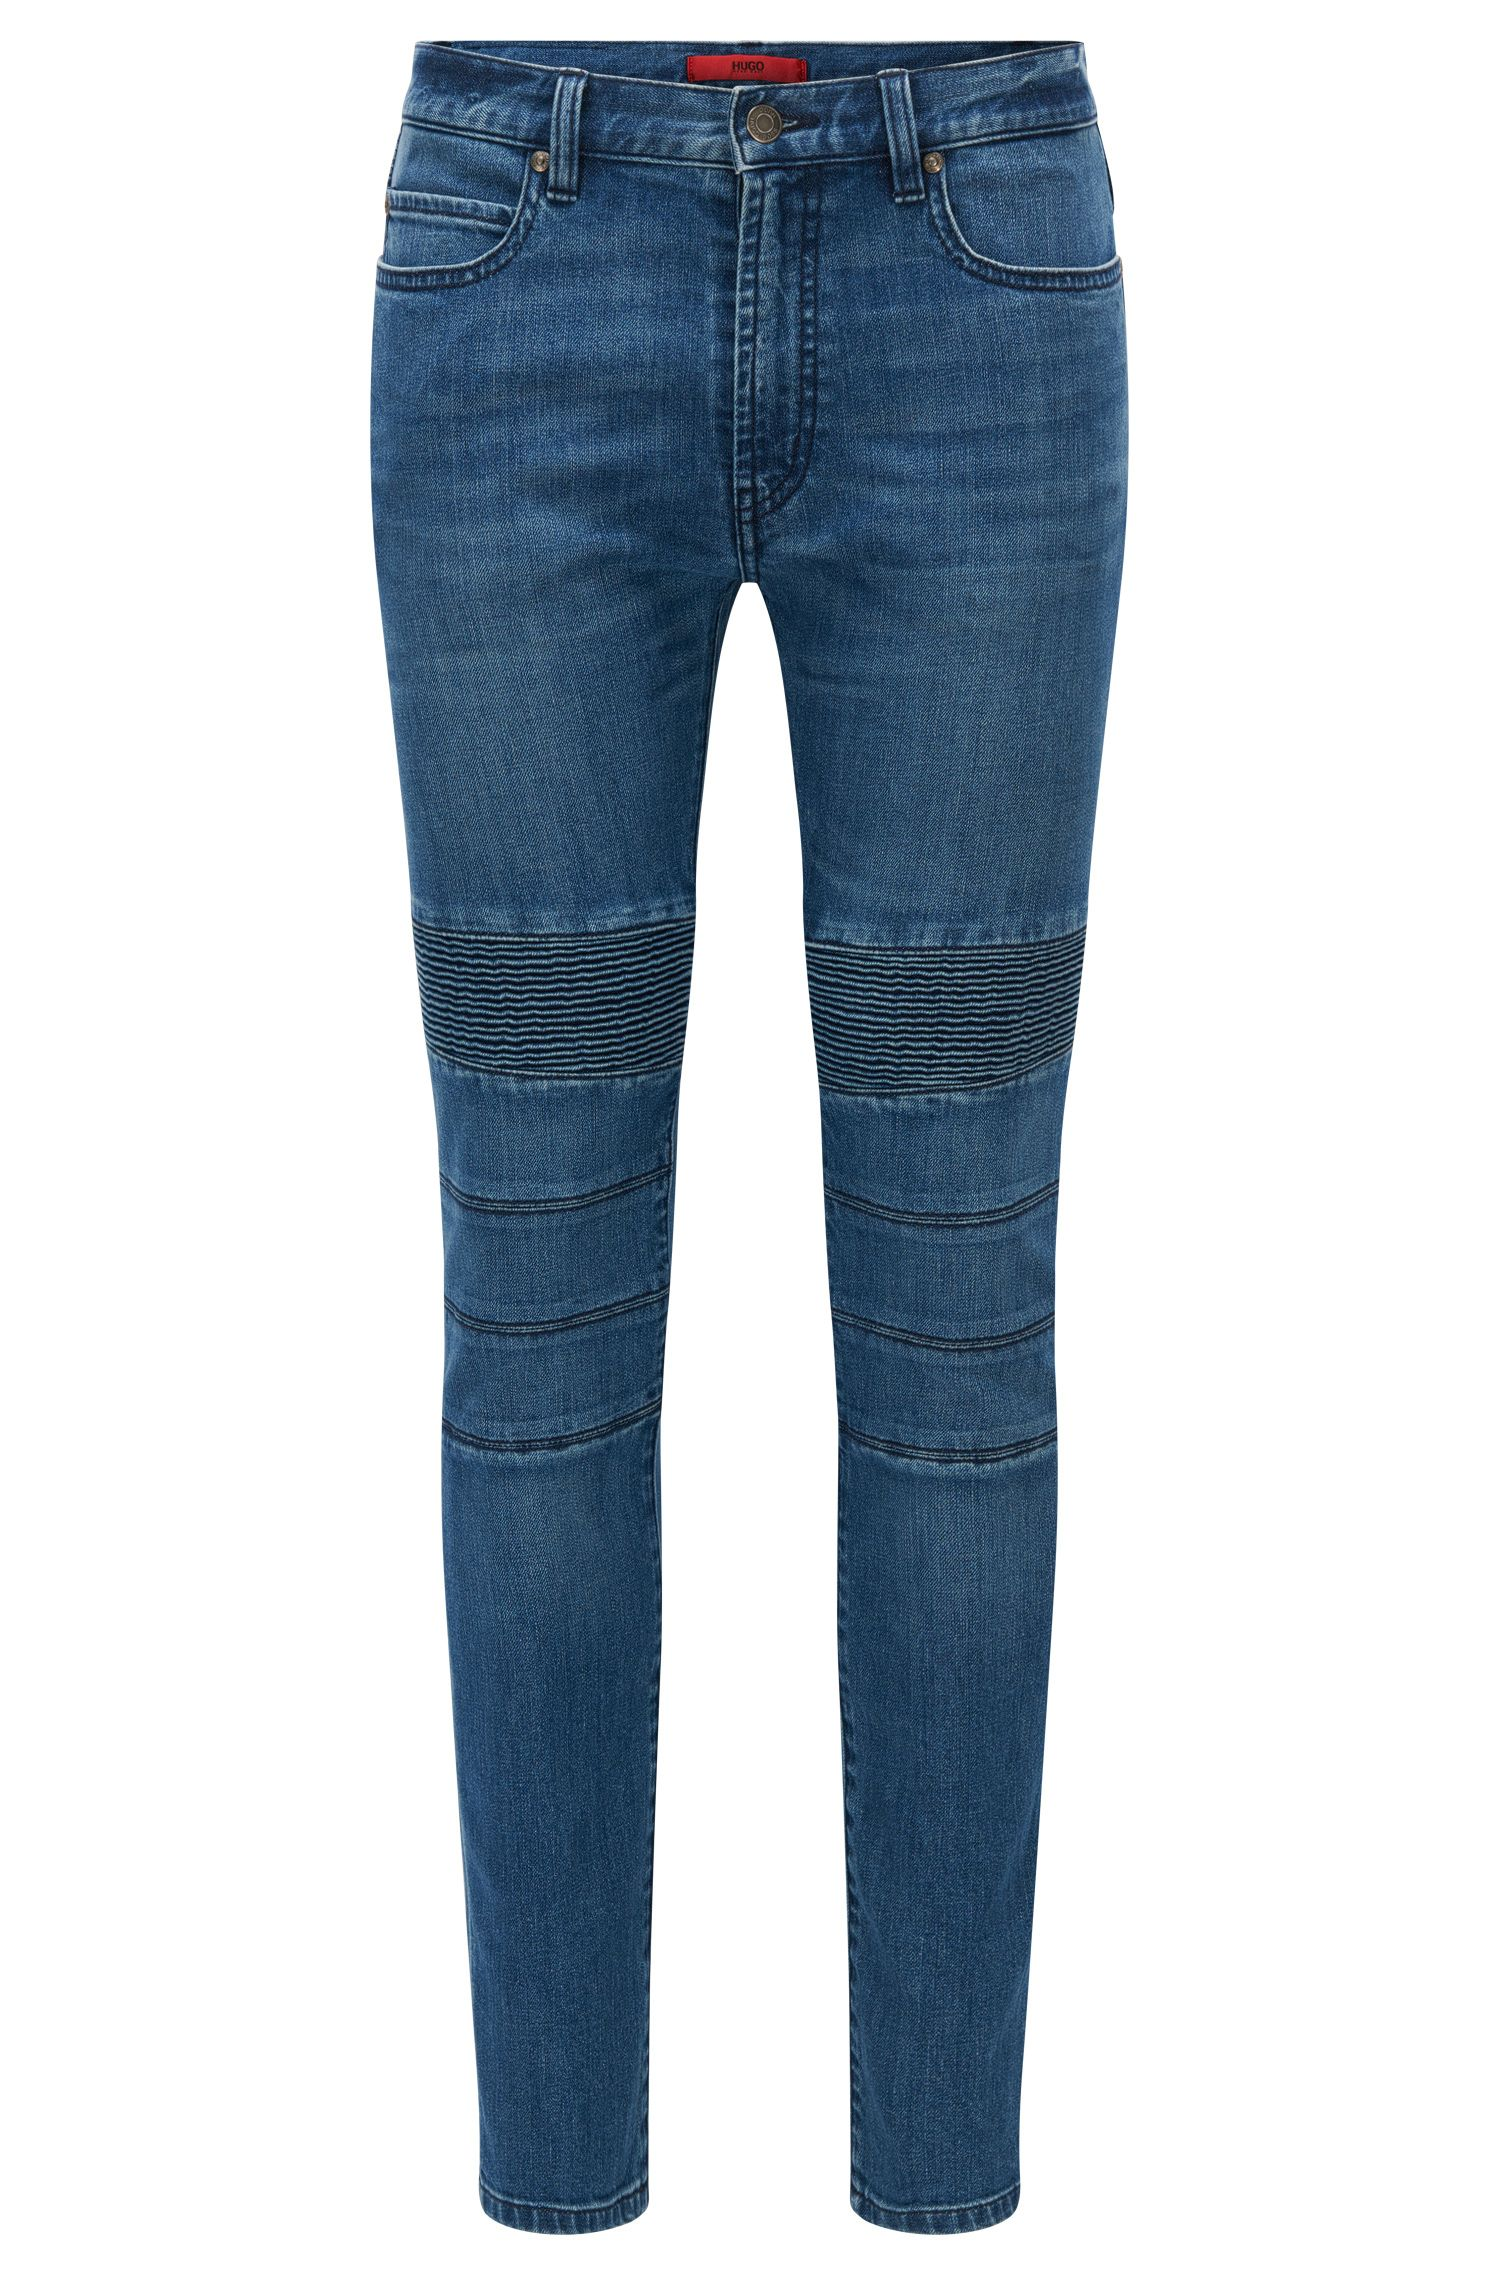 'HUGO 734' | Skinny Fit, 10.75 oz Stretch Cotton Blend Jeans